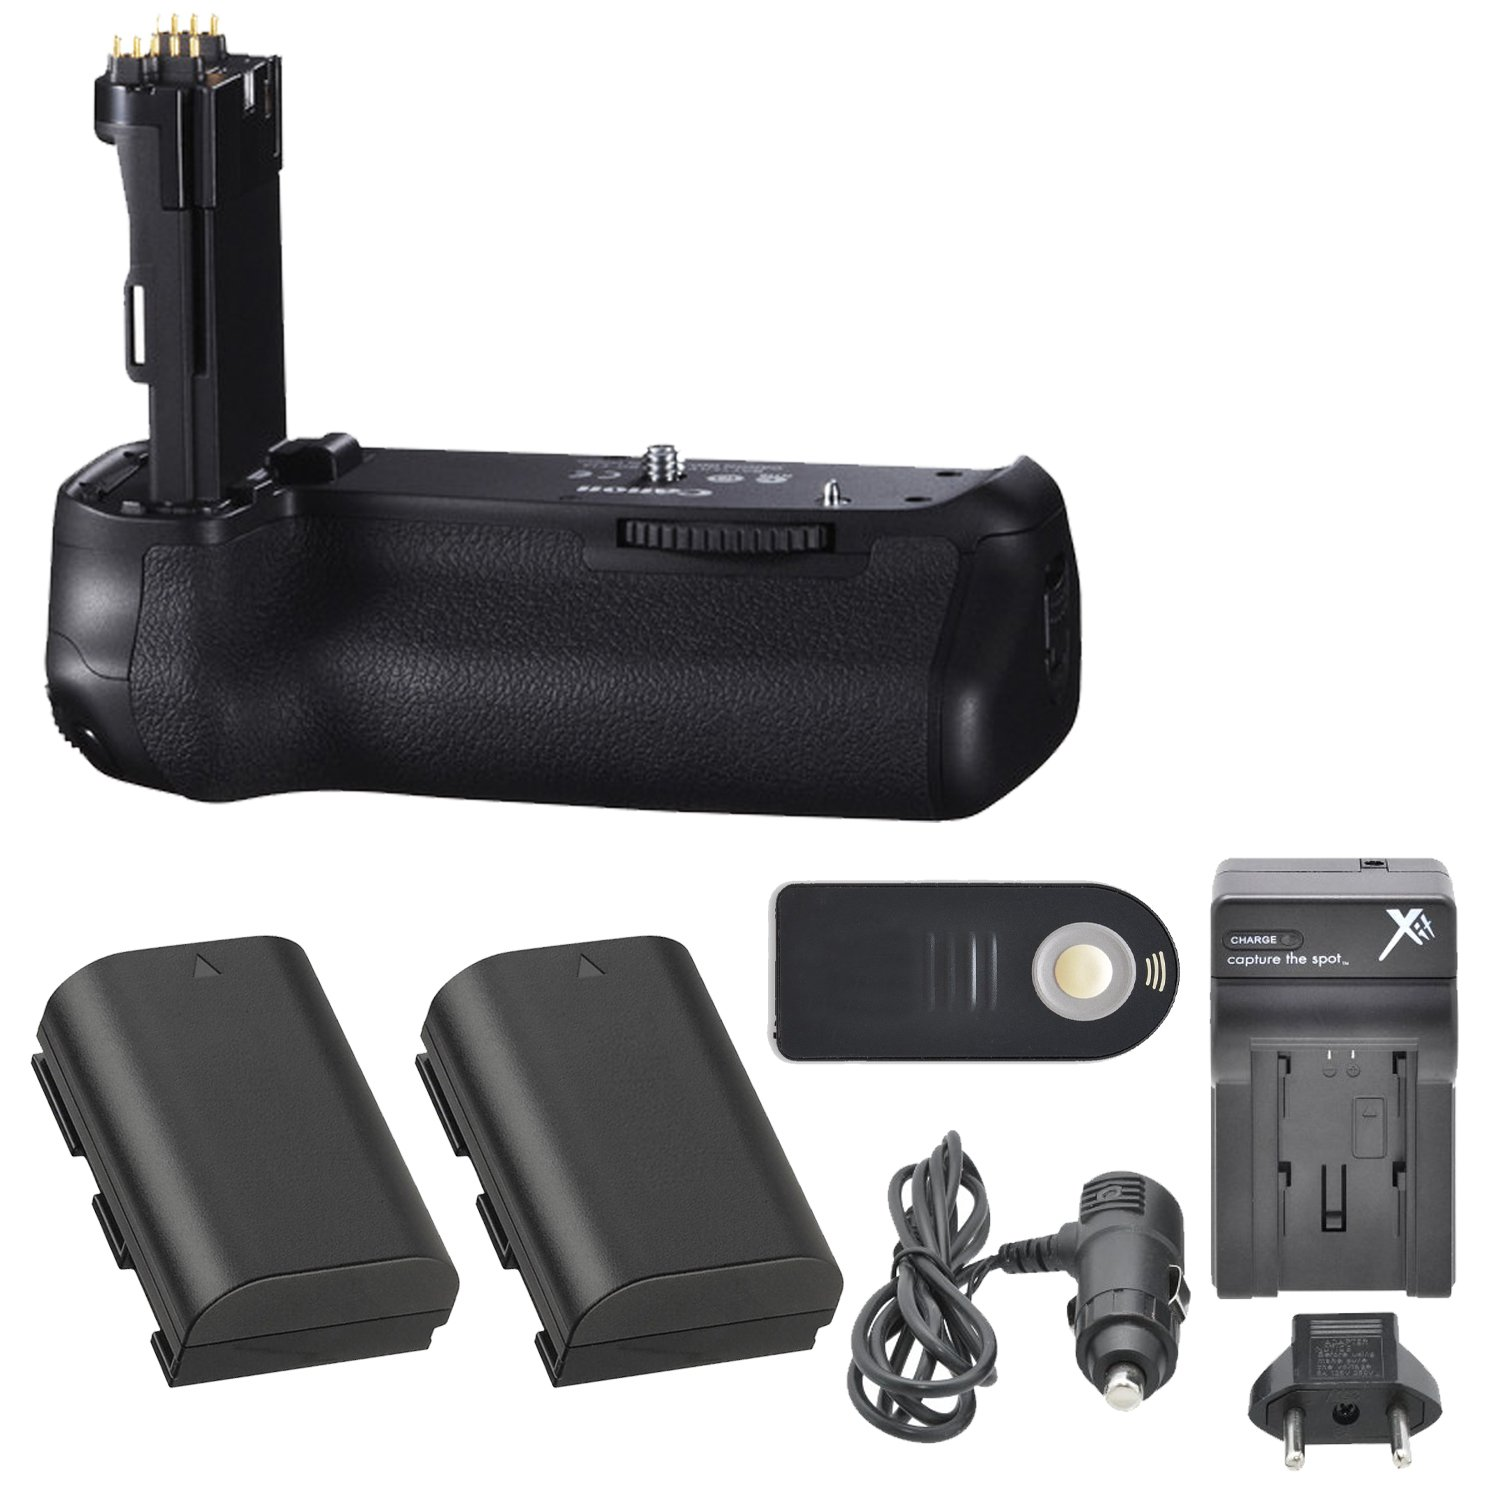 Canon BG-E14 Battery Grip with 2 Extra Batteries (LP-E6), Compact AC/DC Travel Charger, Wireless Remote for EOS 70D and 80D Digital SLR DSLR Cameras by Canon